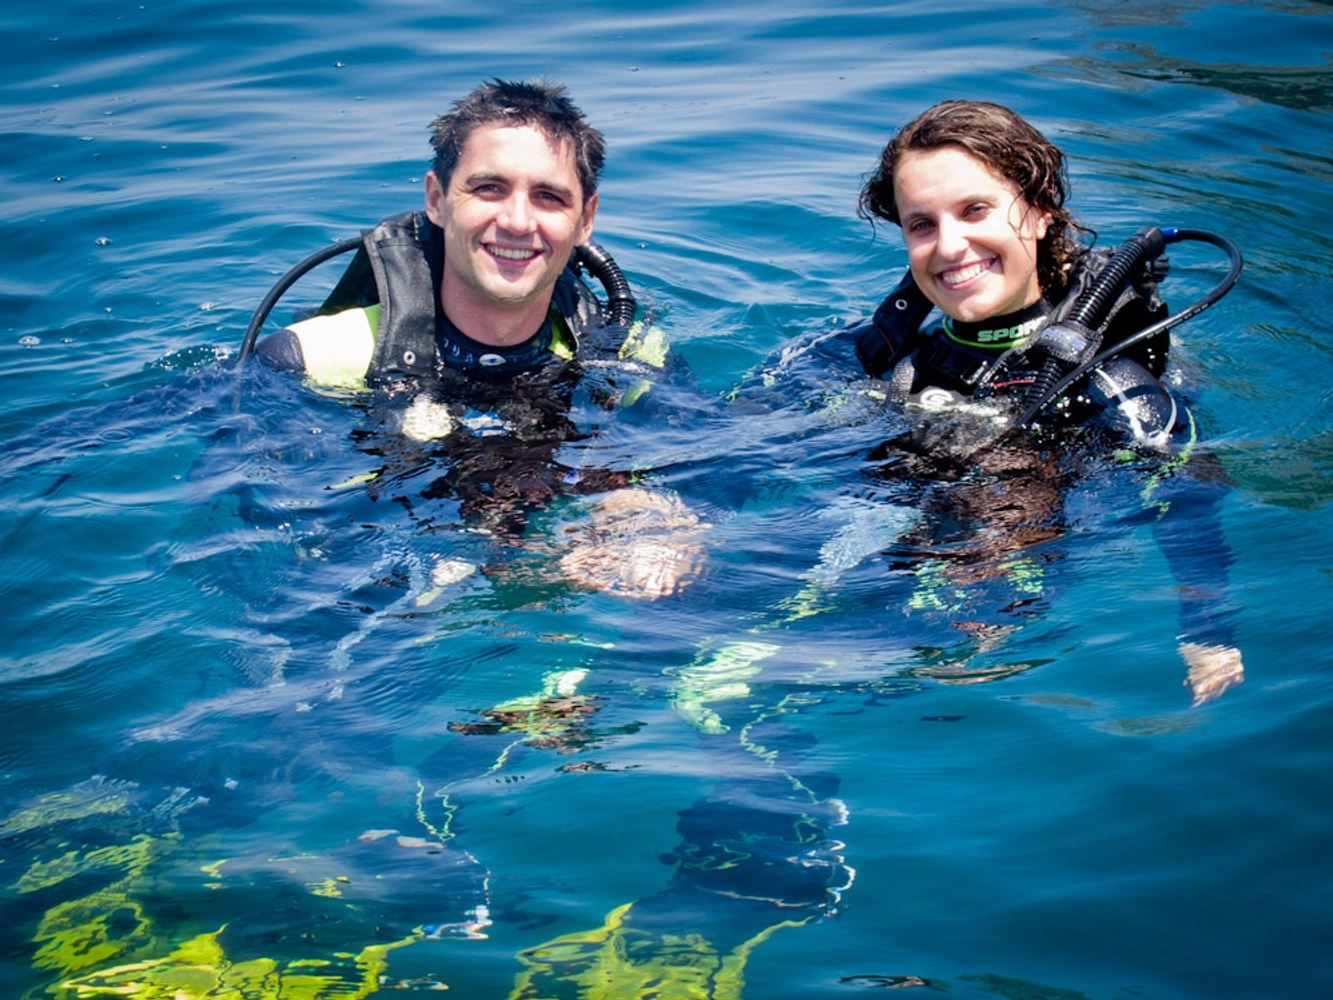 Coiba day trip for certified divers